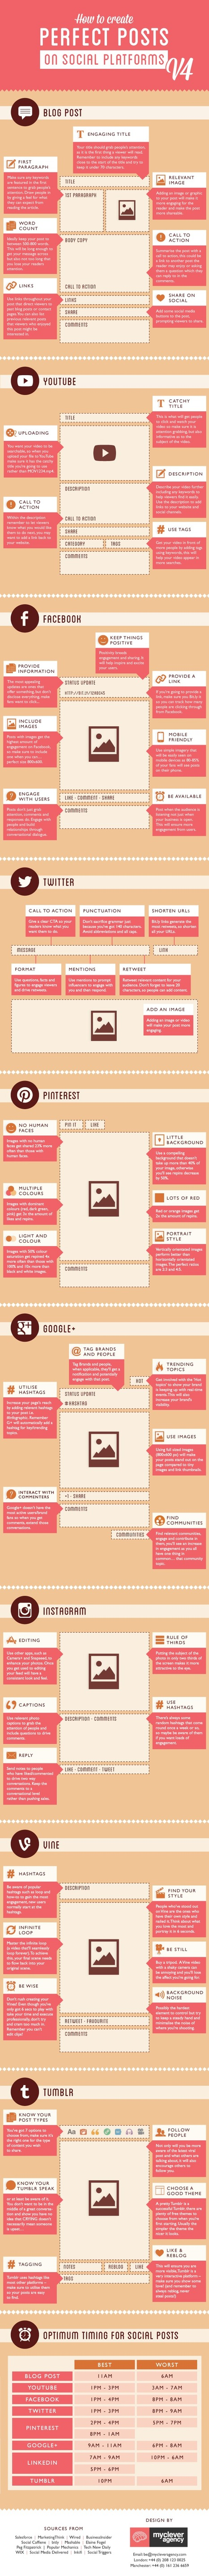 The Art of Creating Perfect Social Media Posts - infographic | Social Media Marketing | Scoop.it